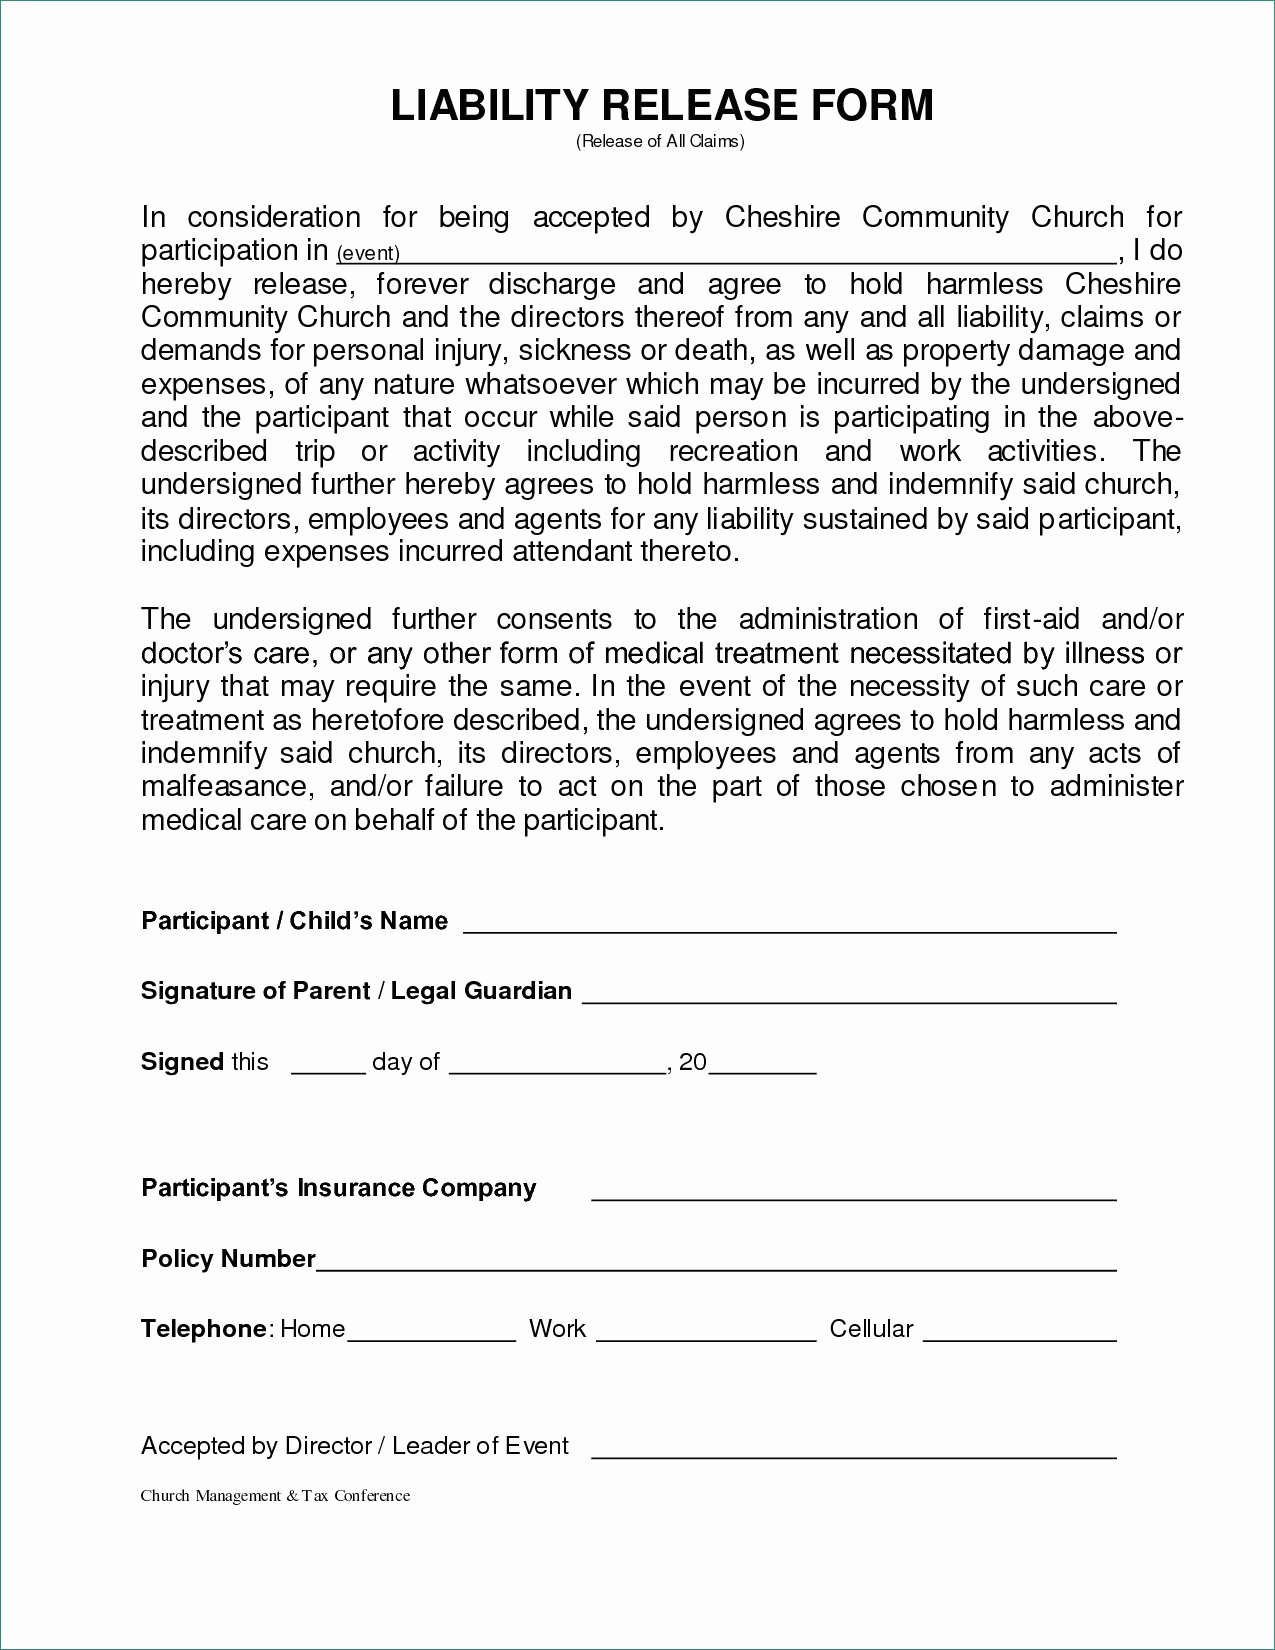 General Liability Release form Luxury General Liability Release form Image – Release Of